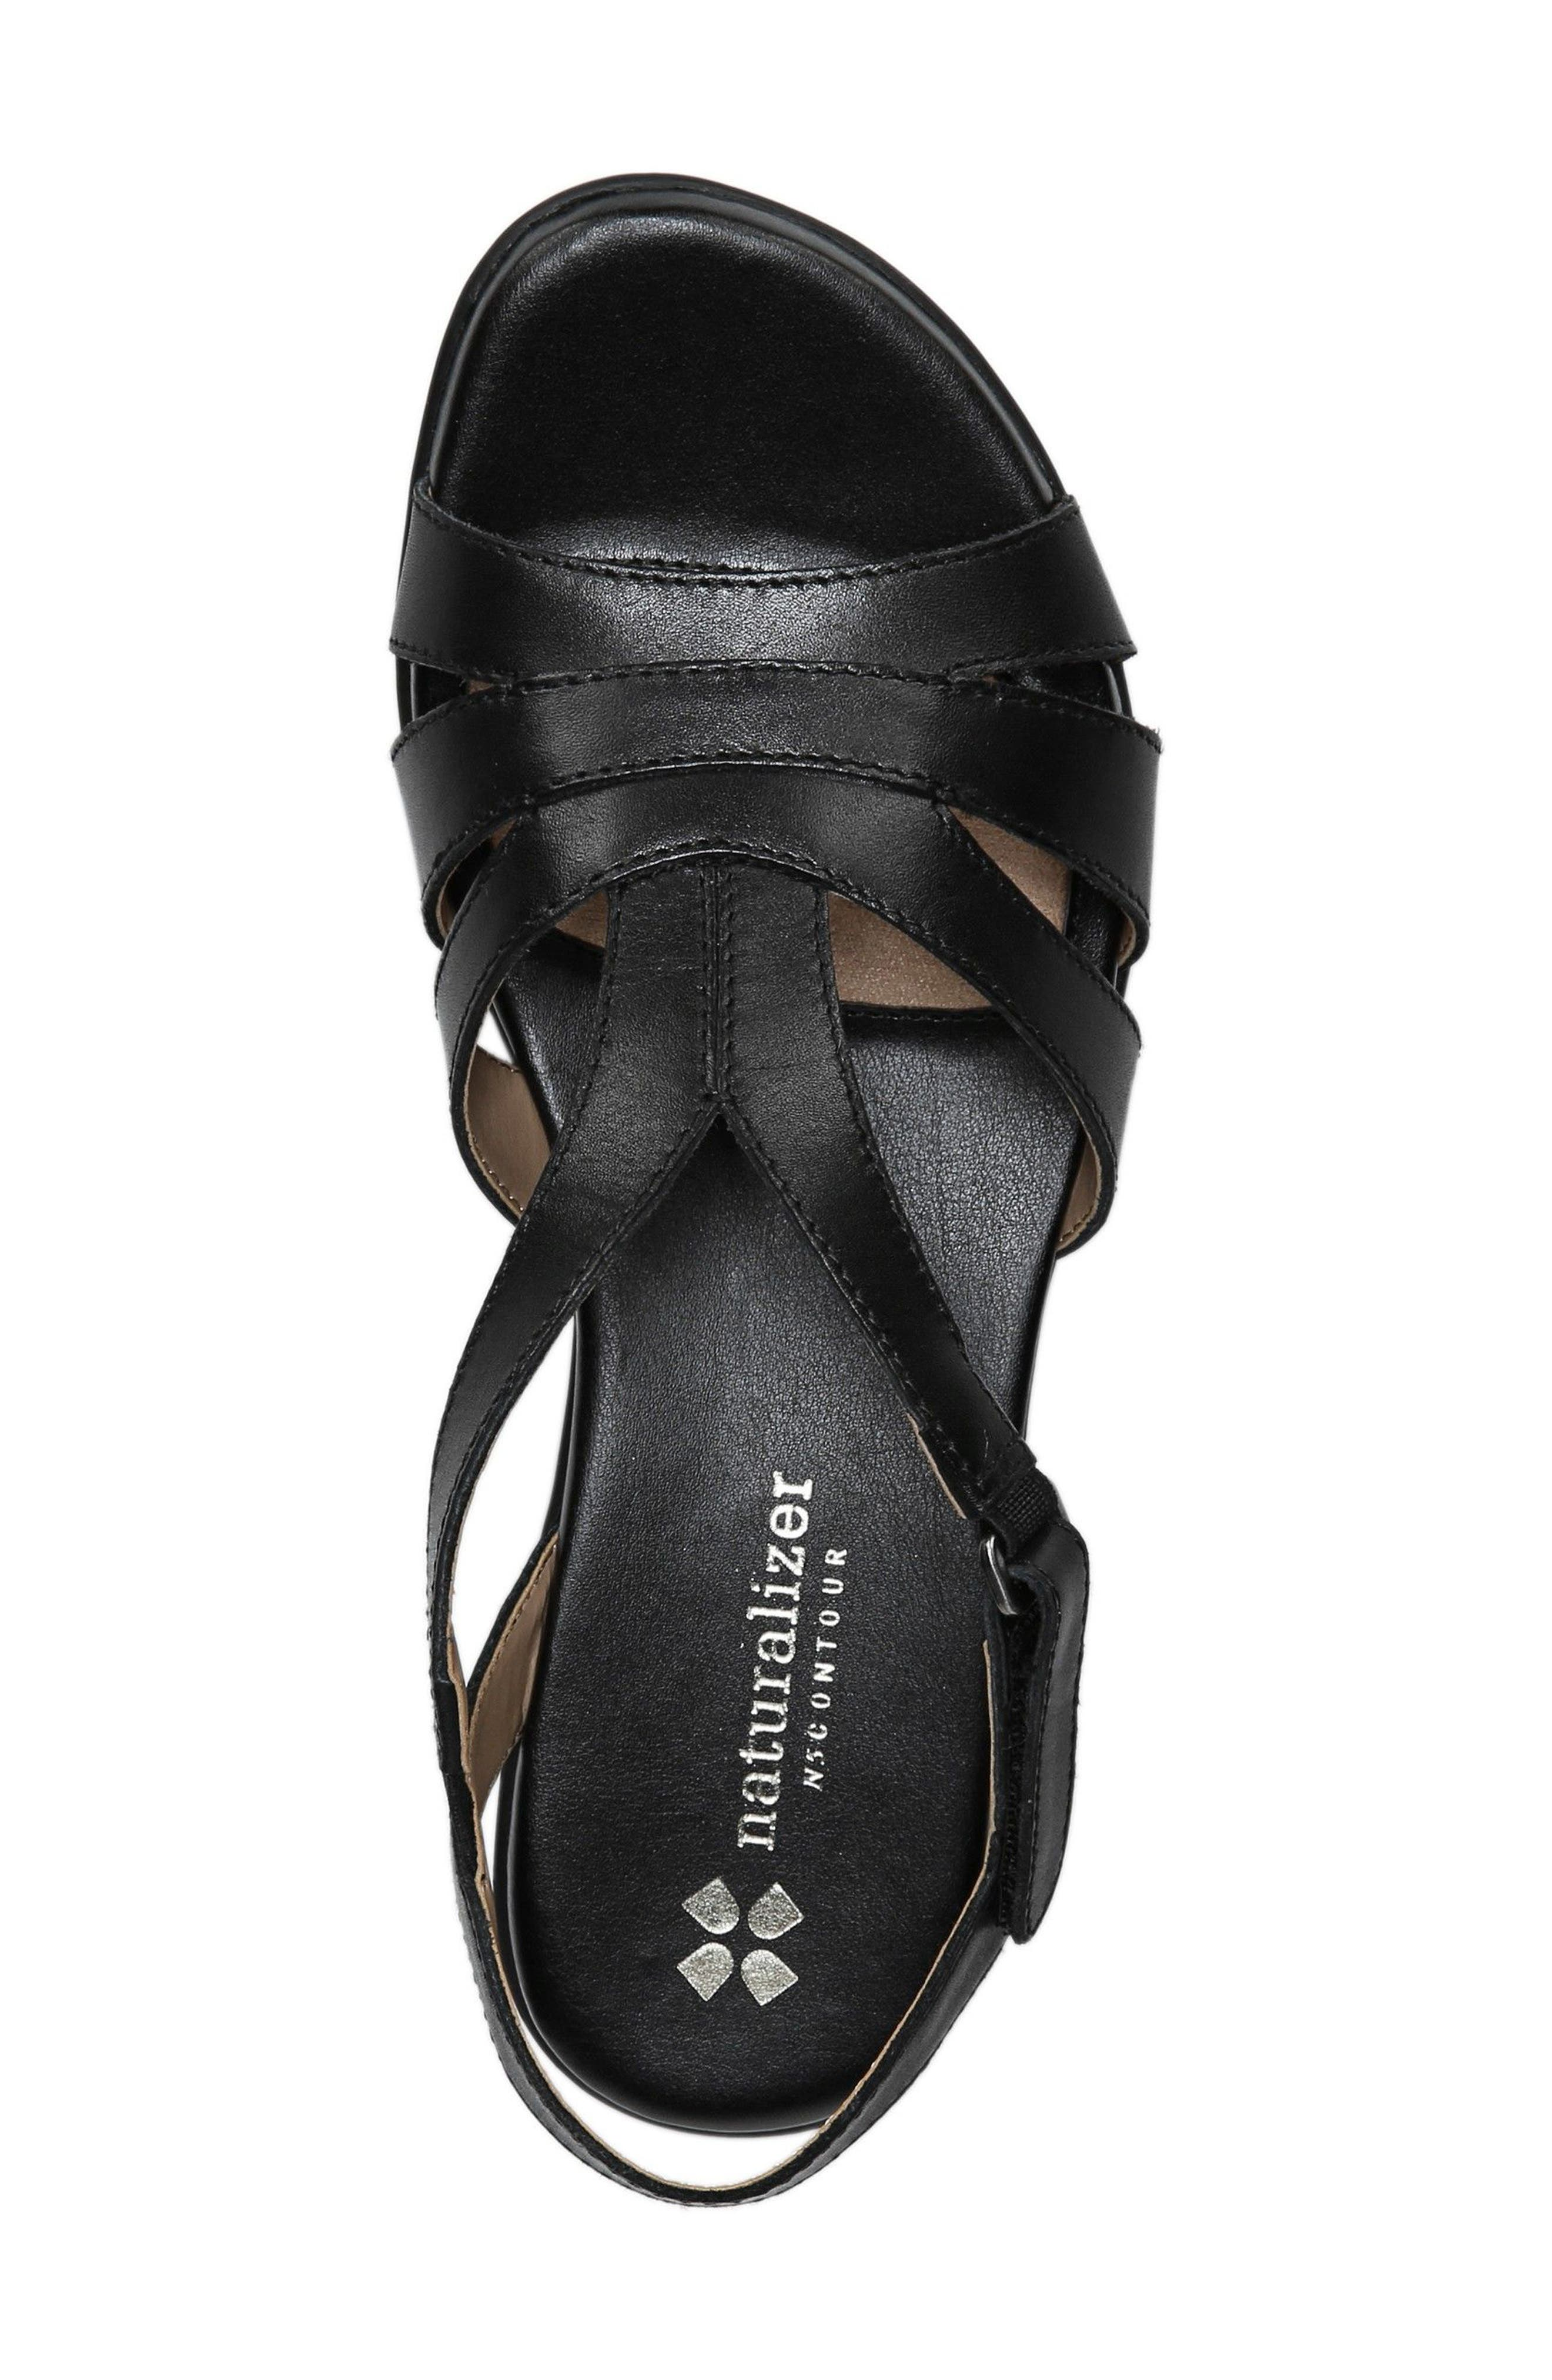 Neina Sandal,                             Alternate thumbnail 3, color,                             001